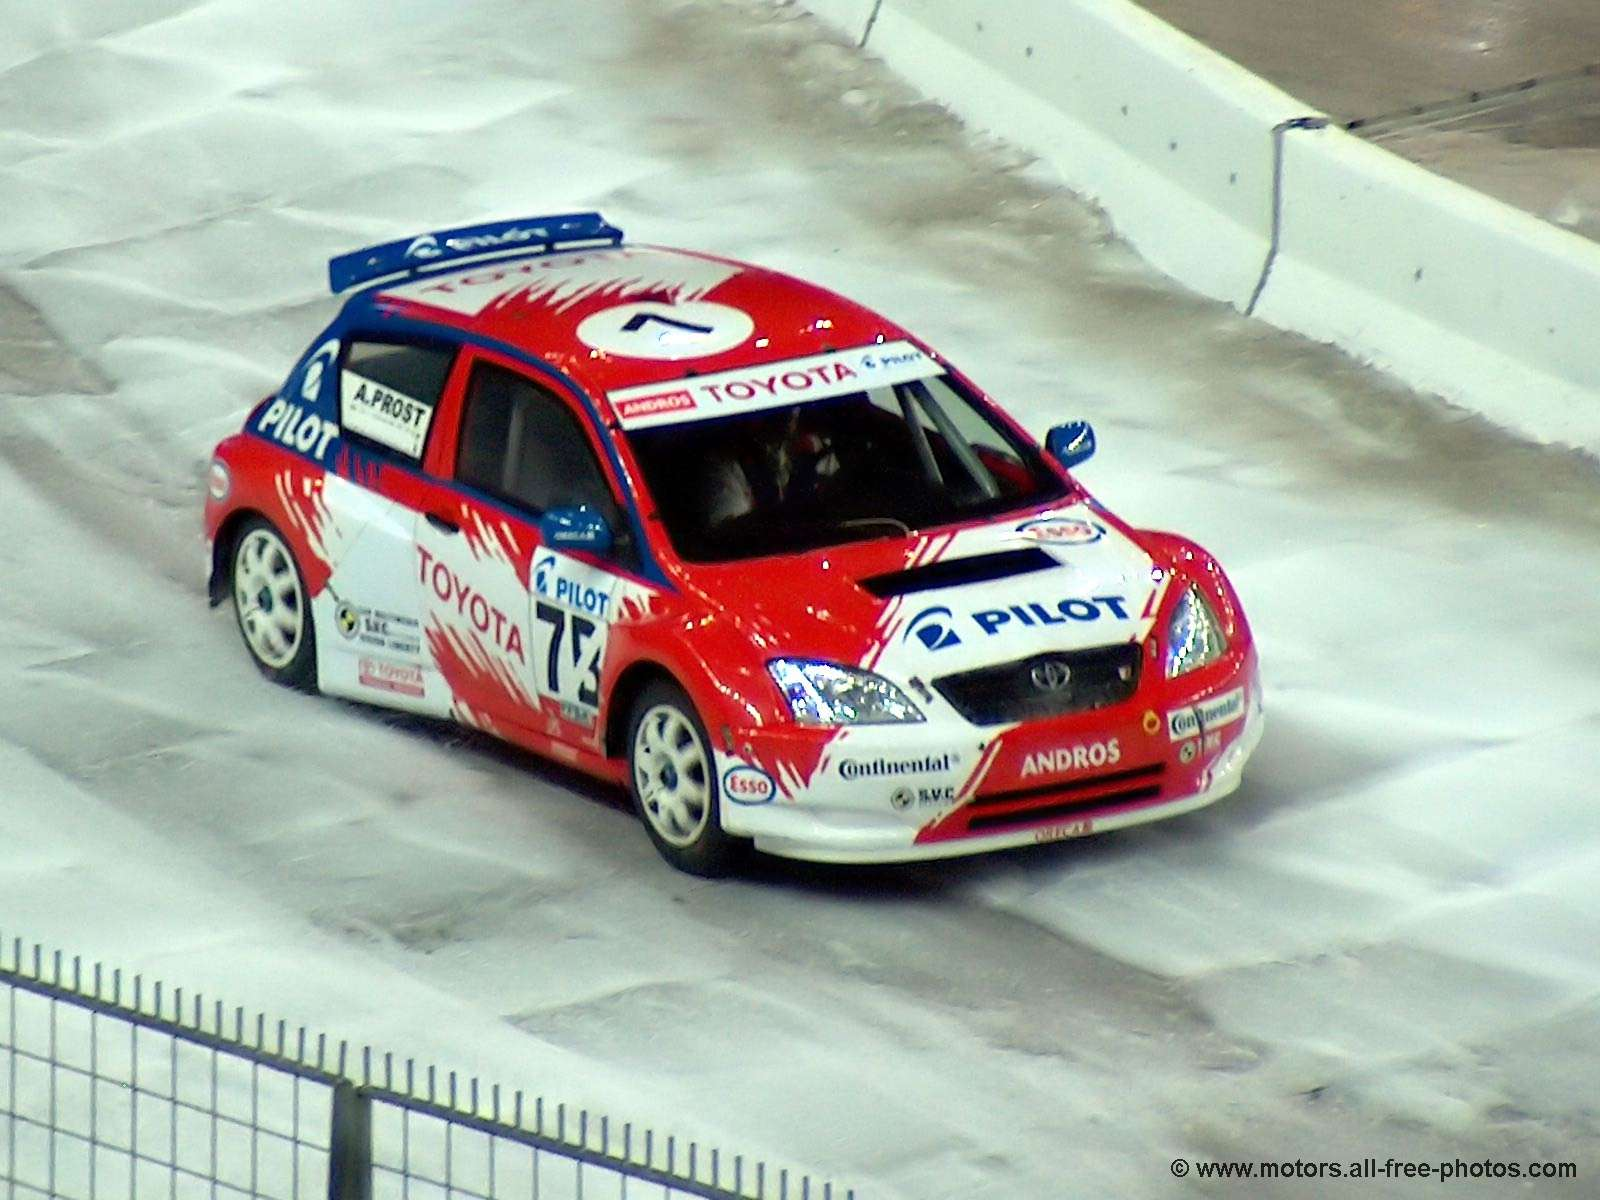 A. Prost on Toyota Corolla